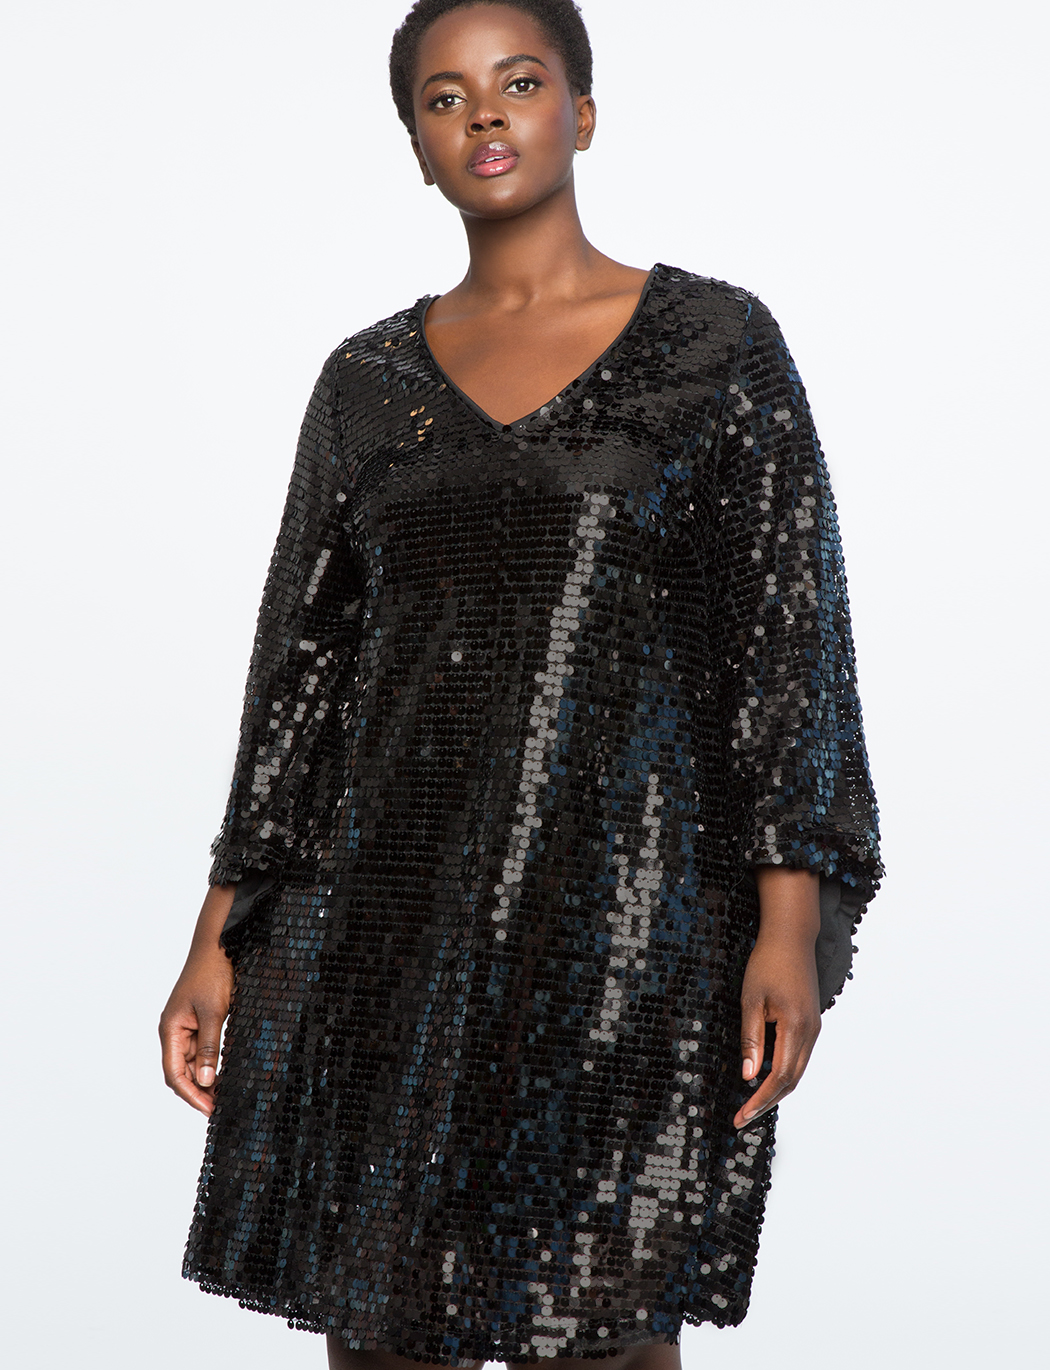 Flare Sleeve Sequin Dress | Women\'s Plus Size Dresses | ELOQUII